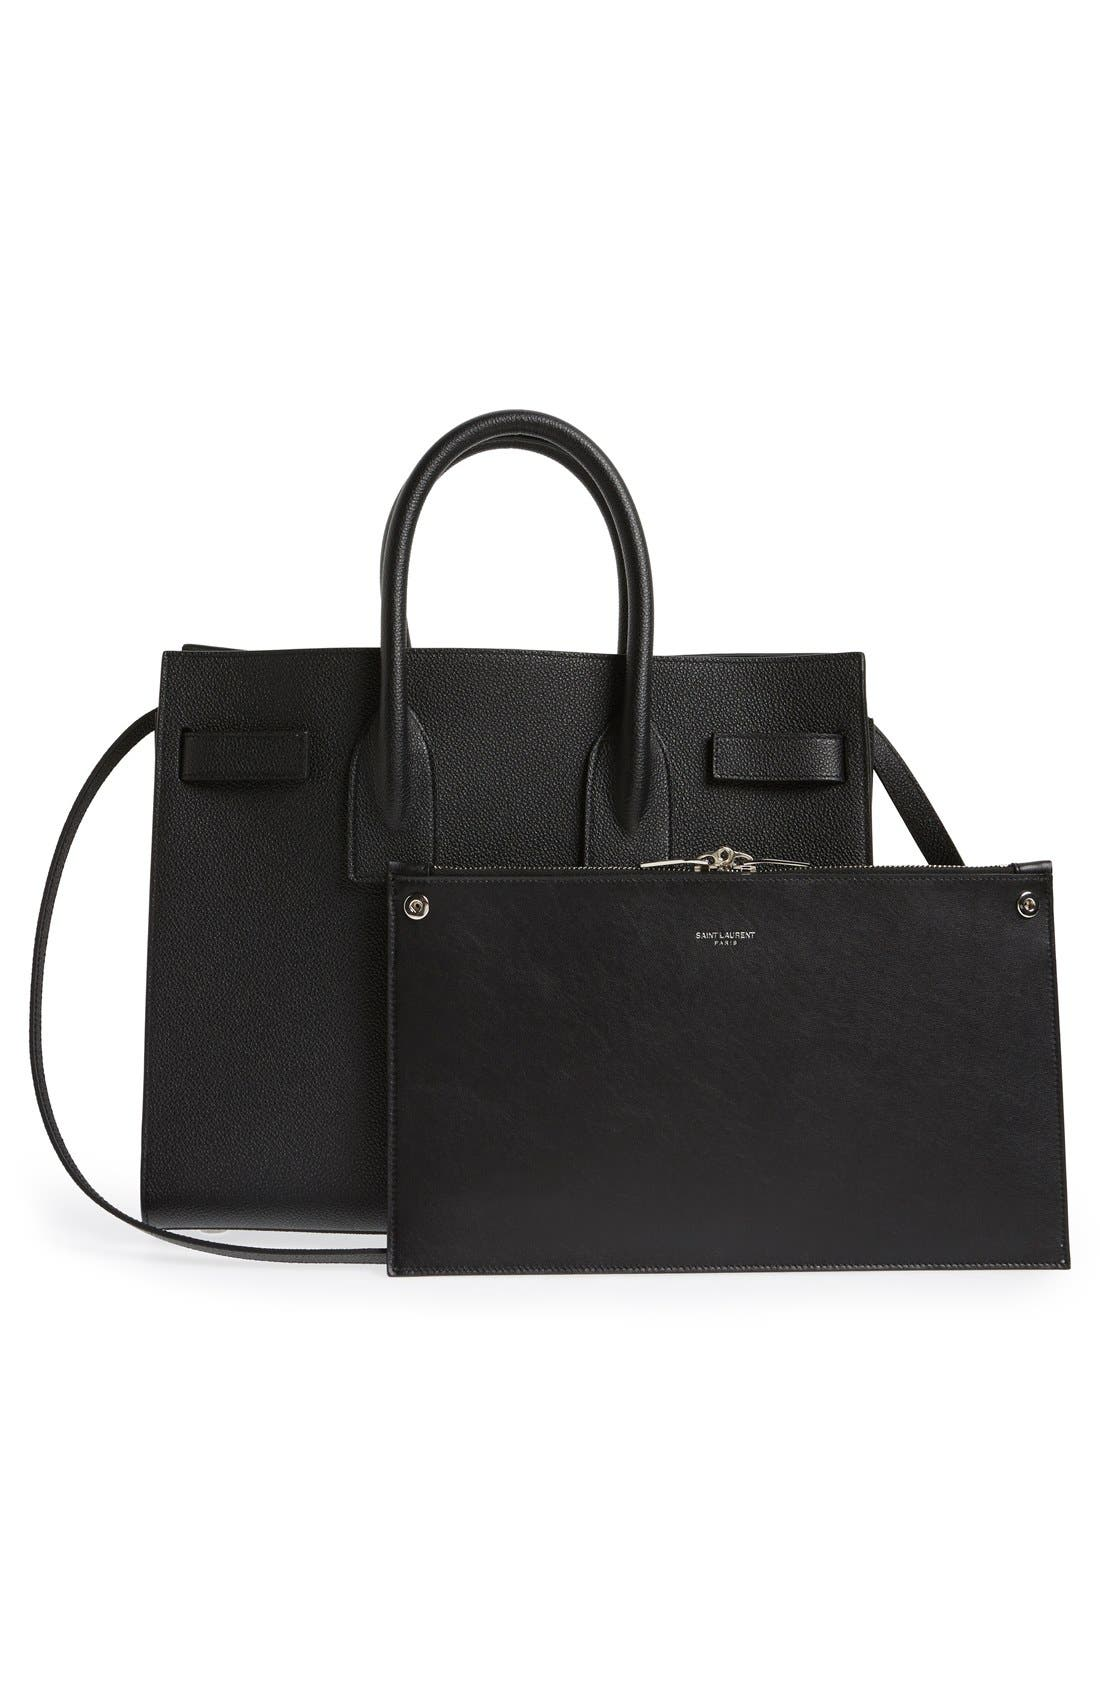 'Small Sac de Jour' Leather Tote,                             Alternate thumbnail 5, color,                             NOIR